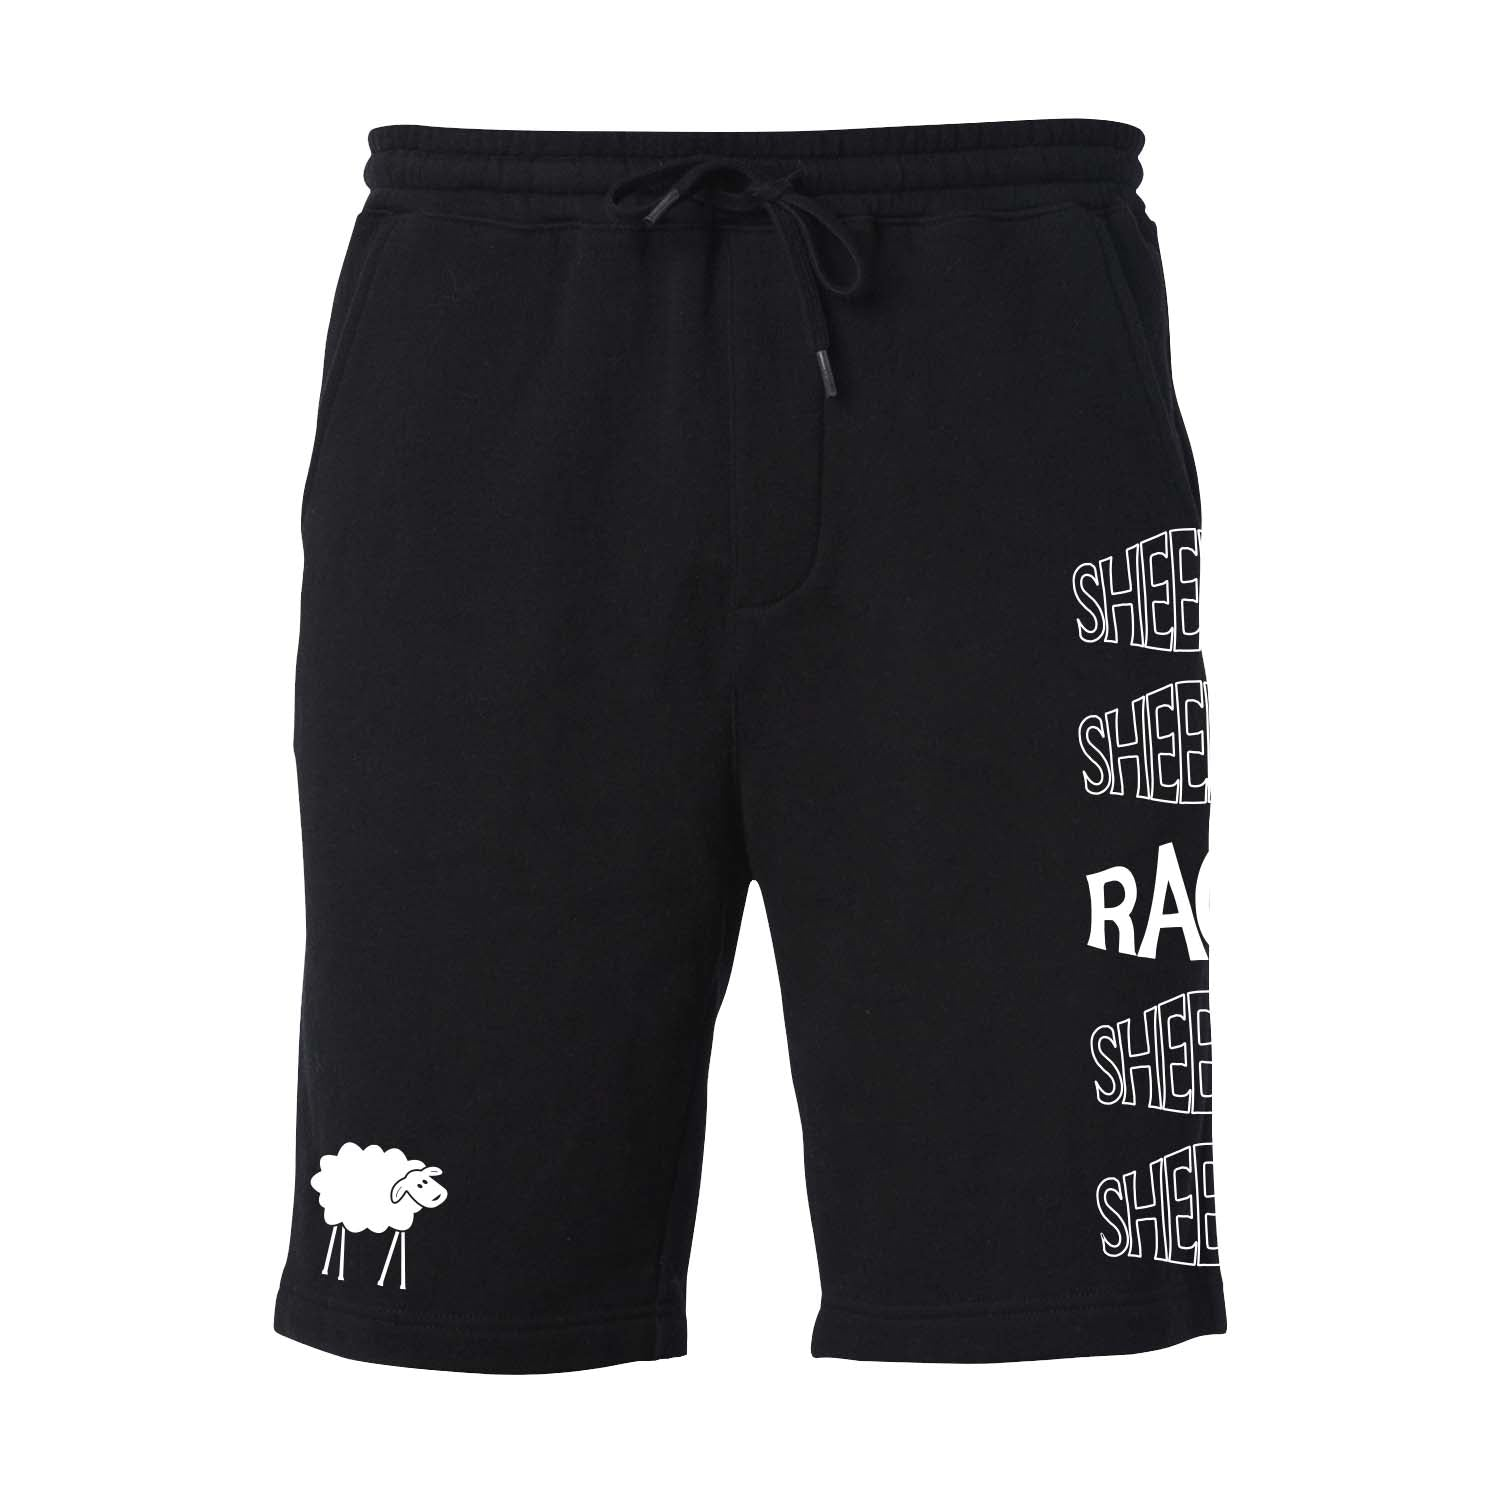 SHEEPEYRACE Origins Shorts Black